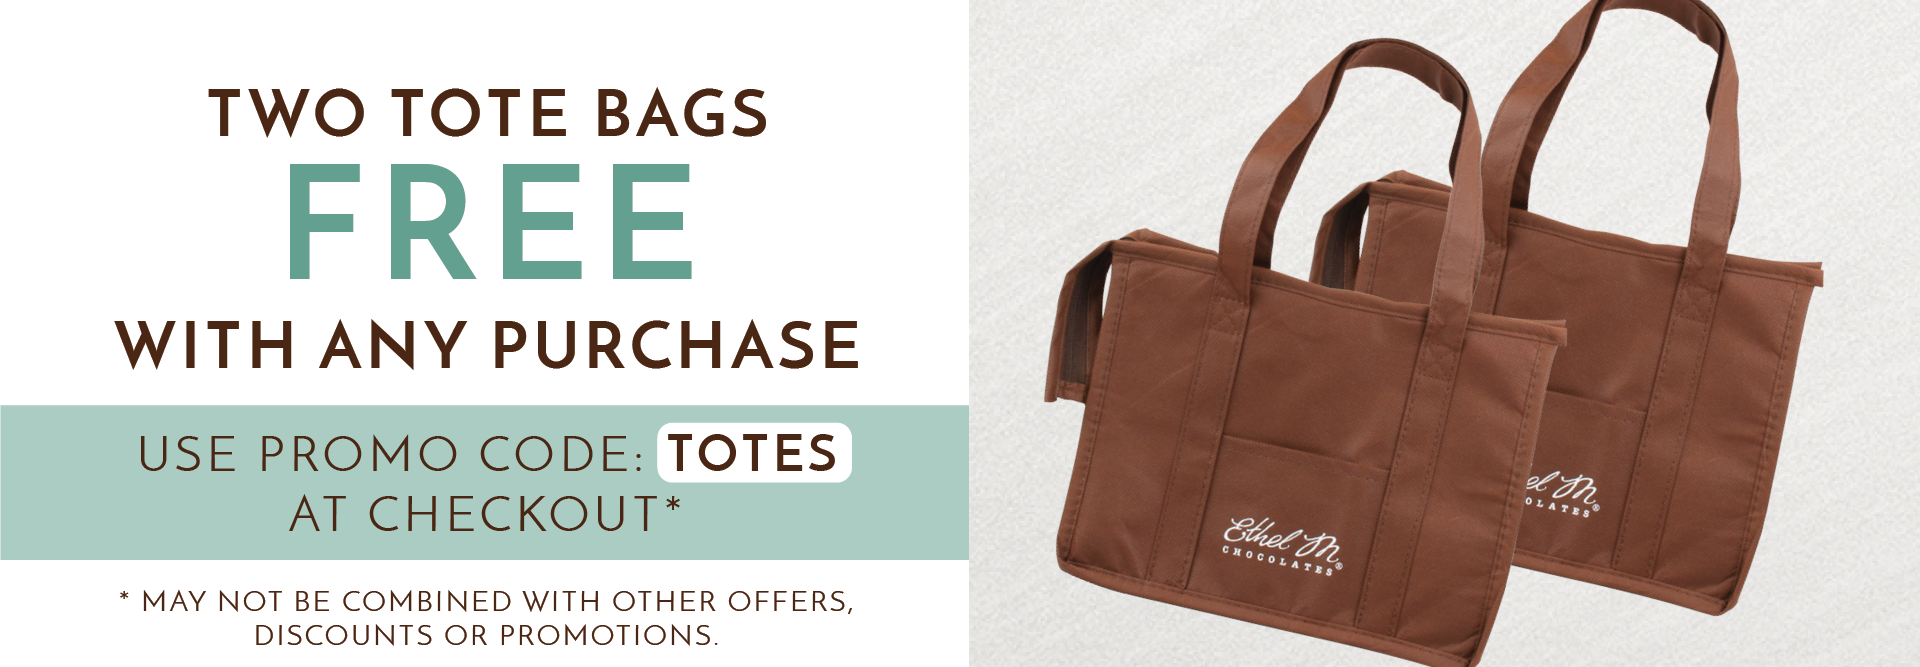 Get two premium Ethel M Chocolates insulated tote bags free on any purchase when you use code TOTES at checkout!